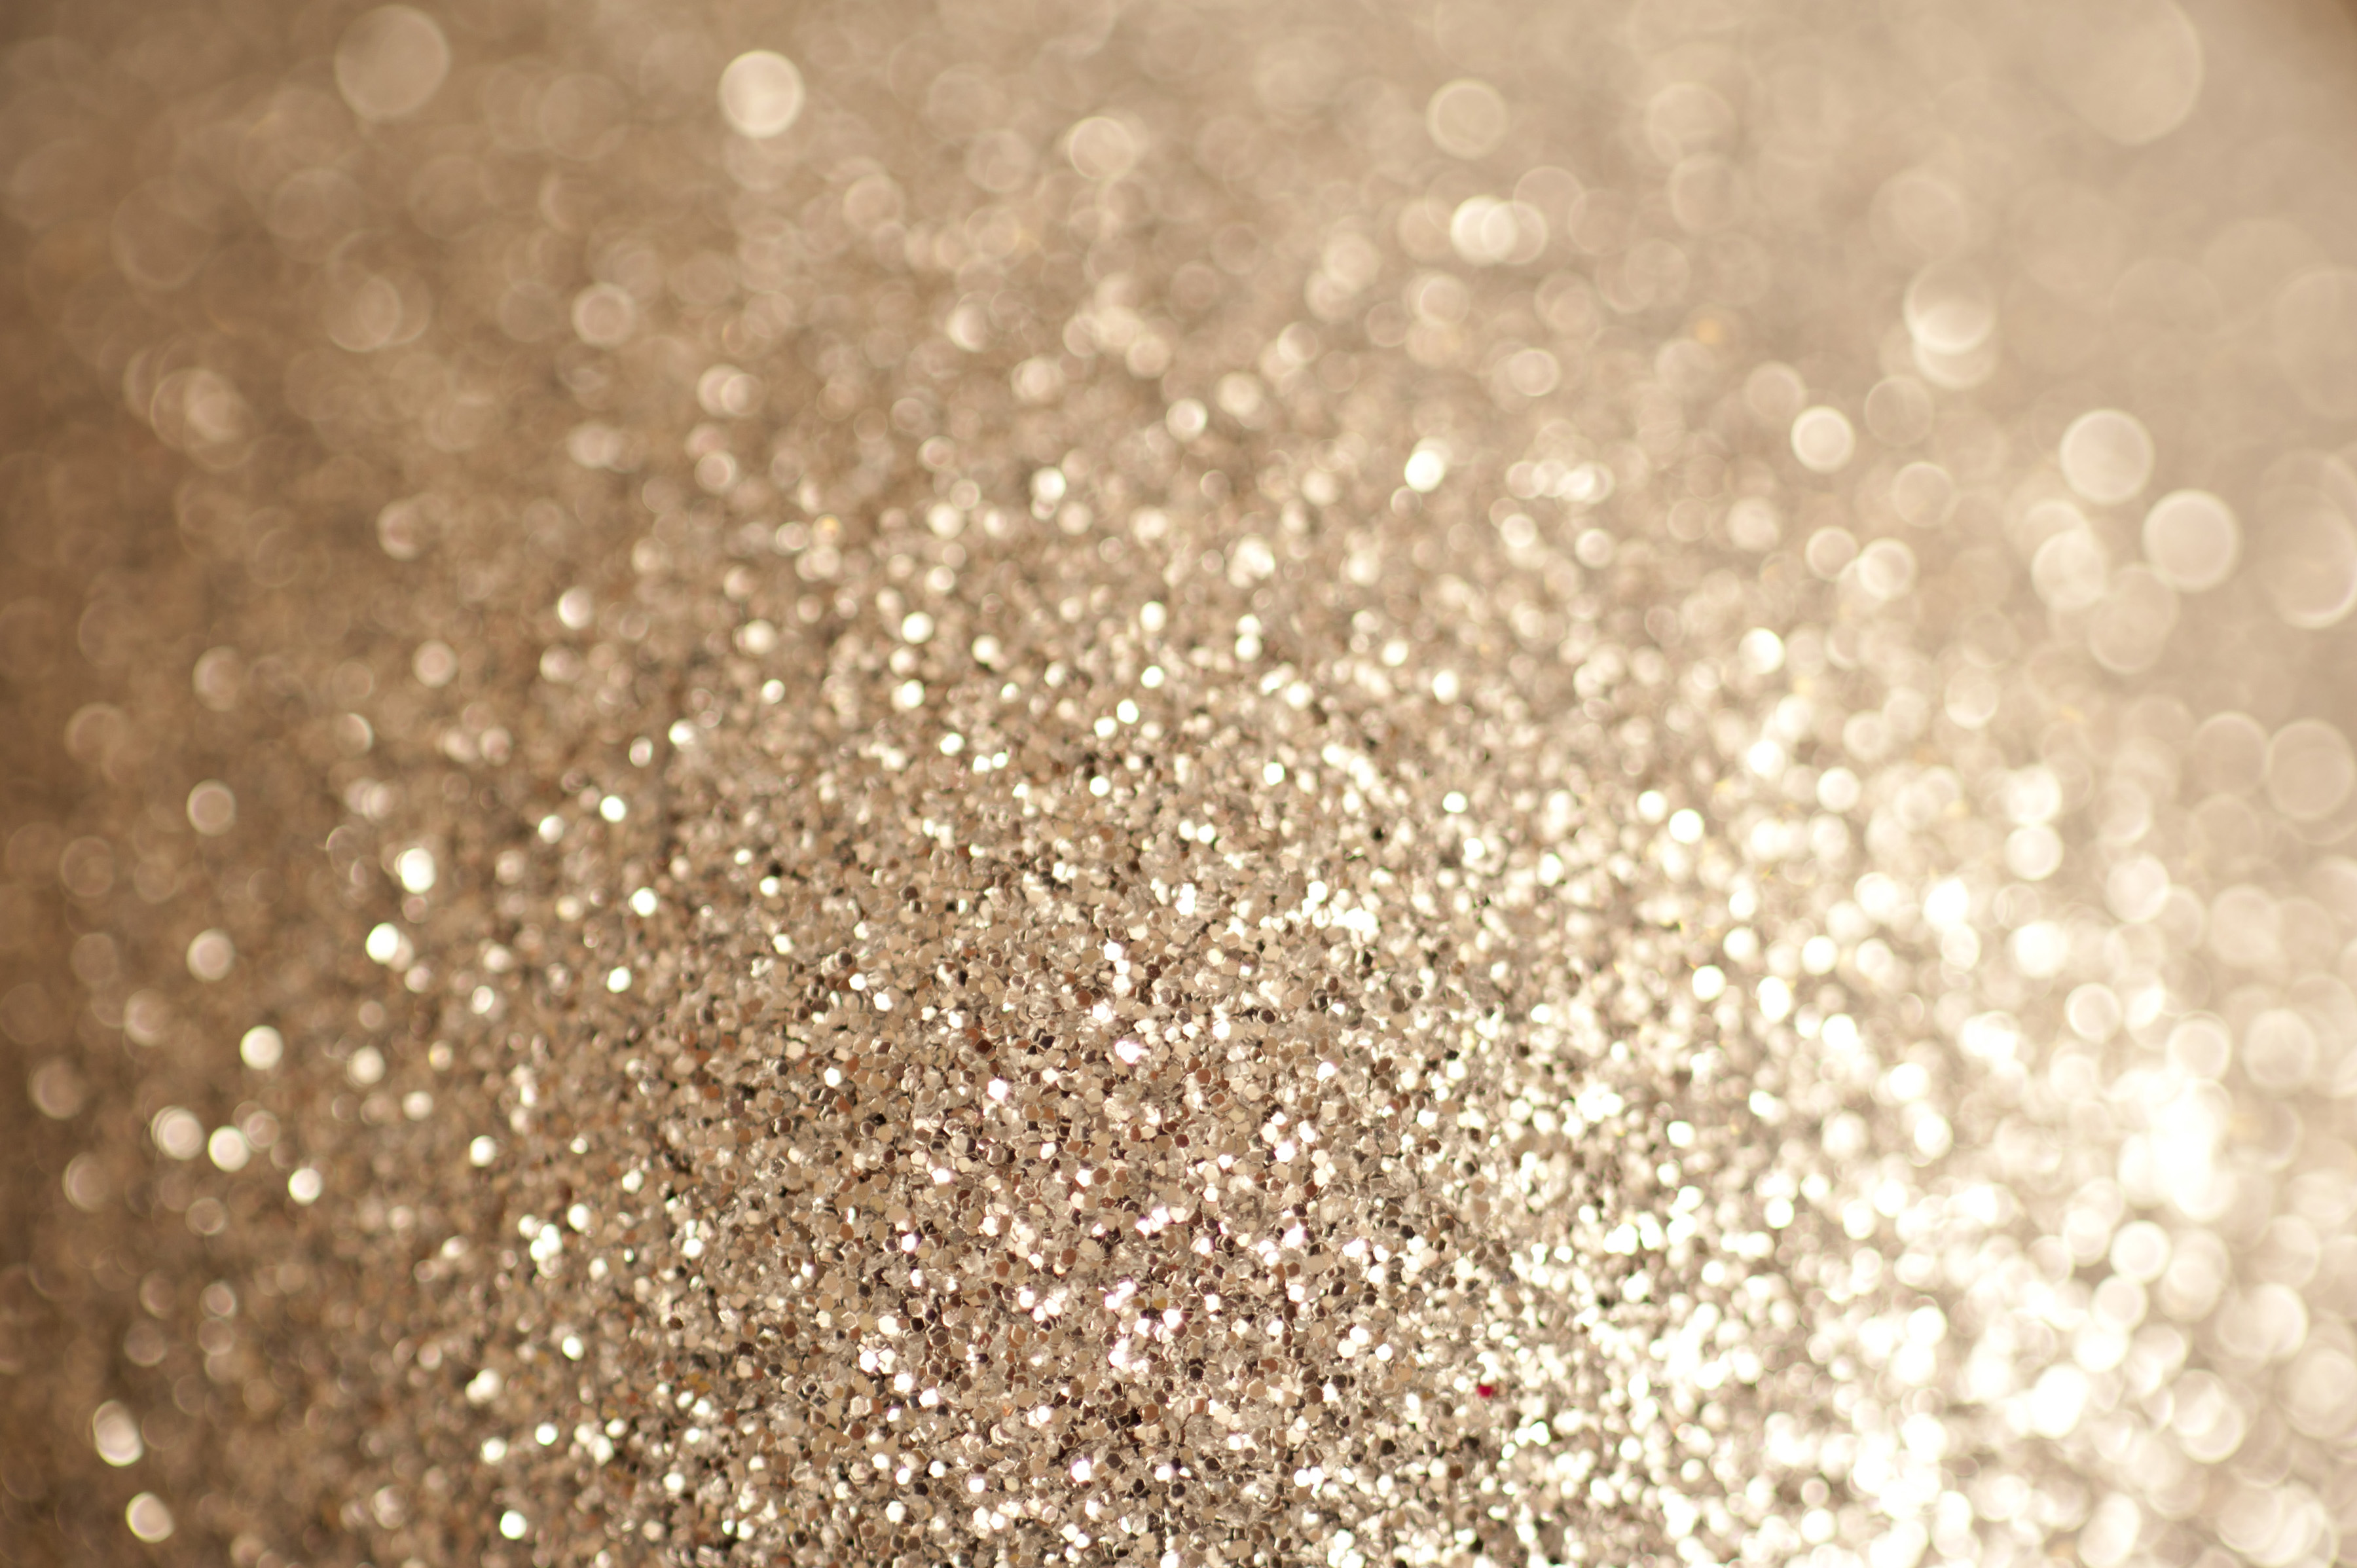 Free Backrounds sparkling gold glitter background | free backgrounds and